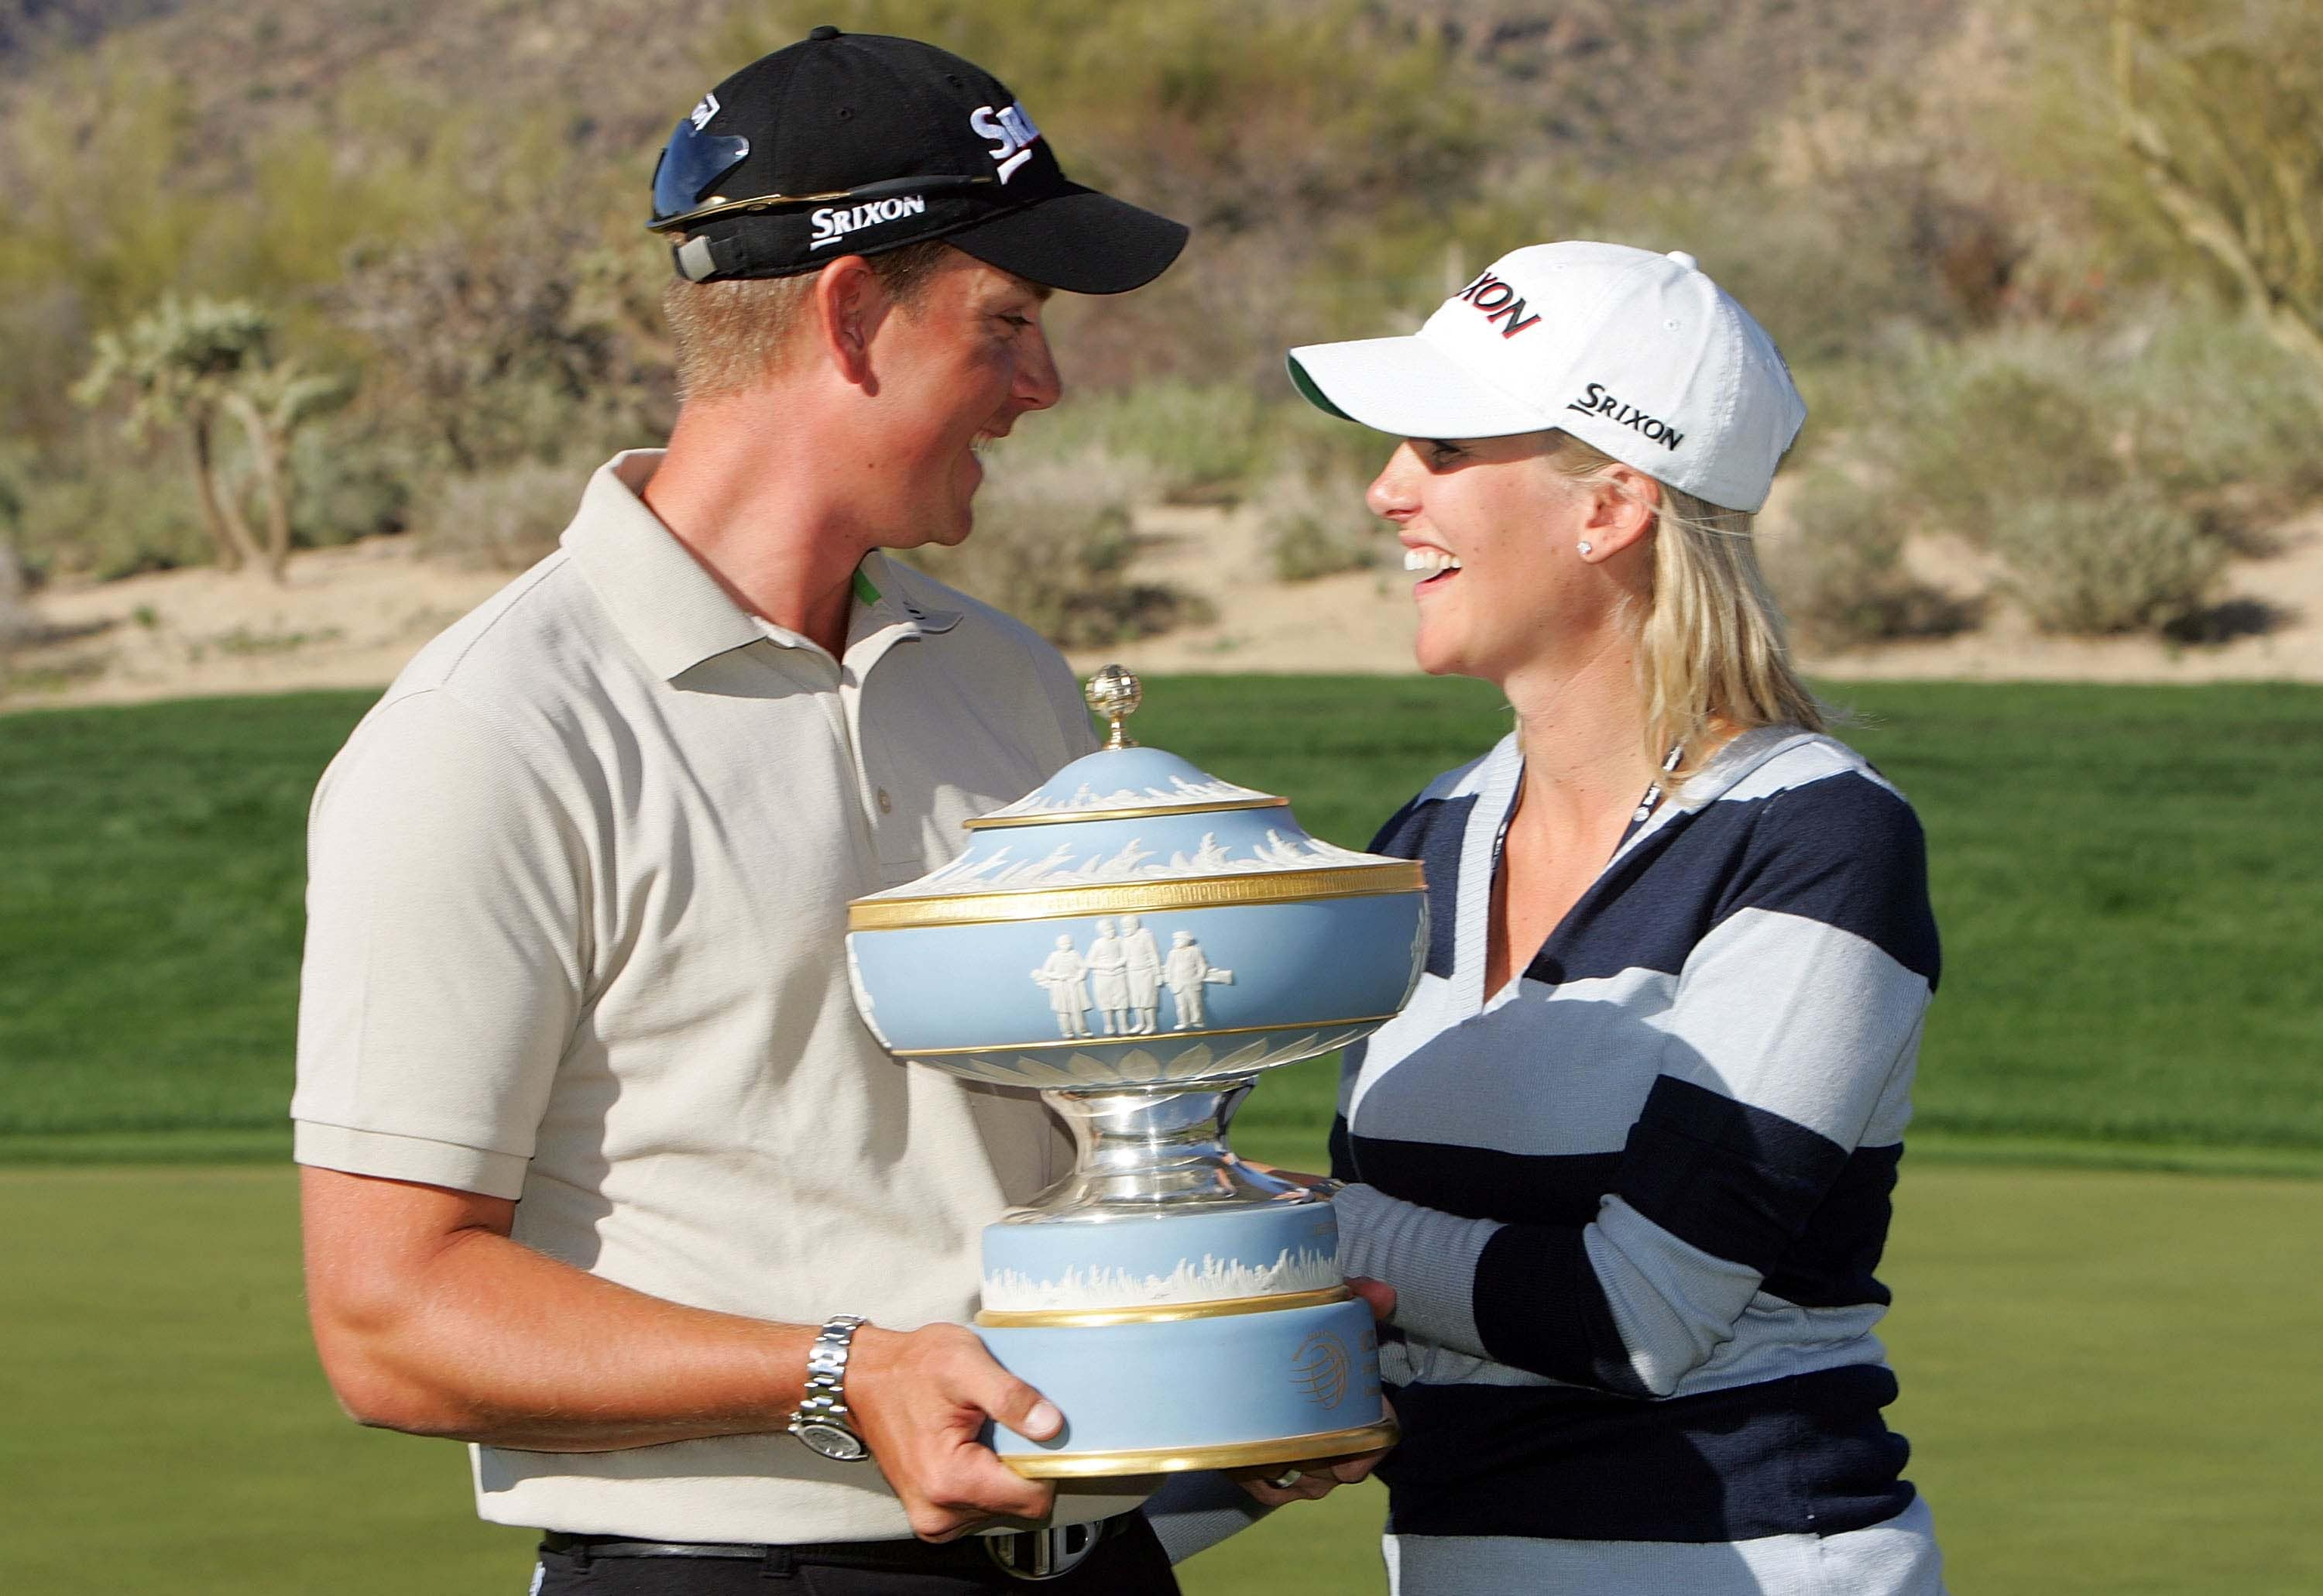 At the 2007 WGC-Accenture Match Play Championship